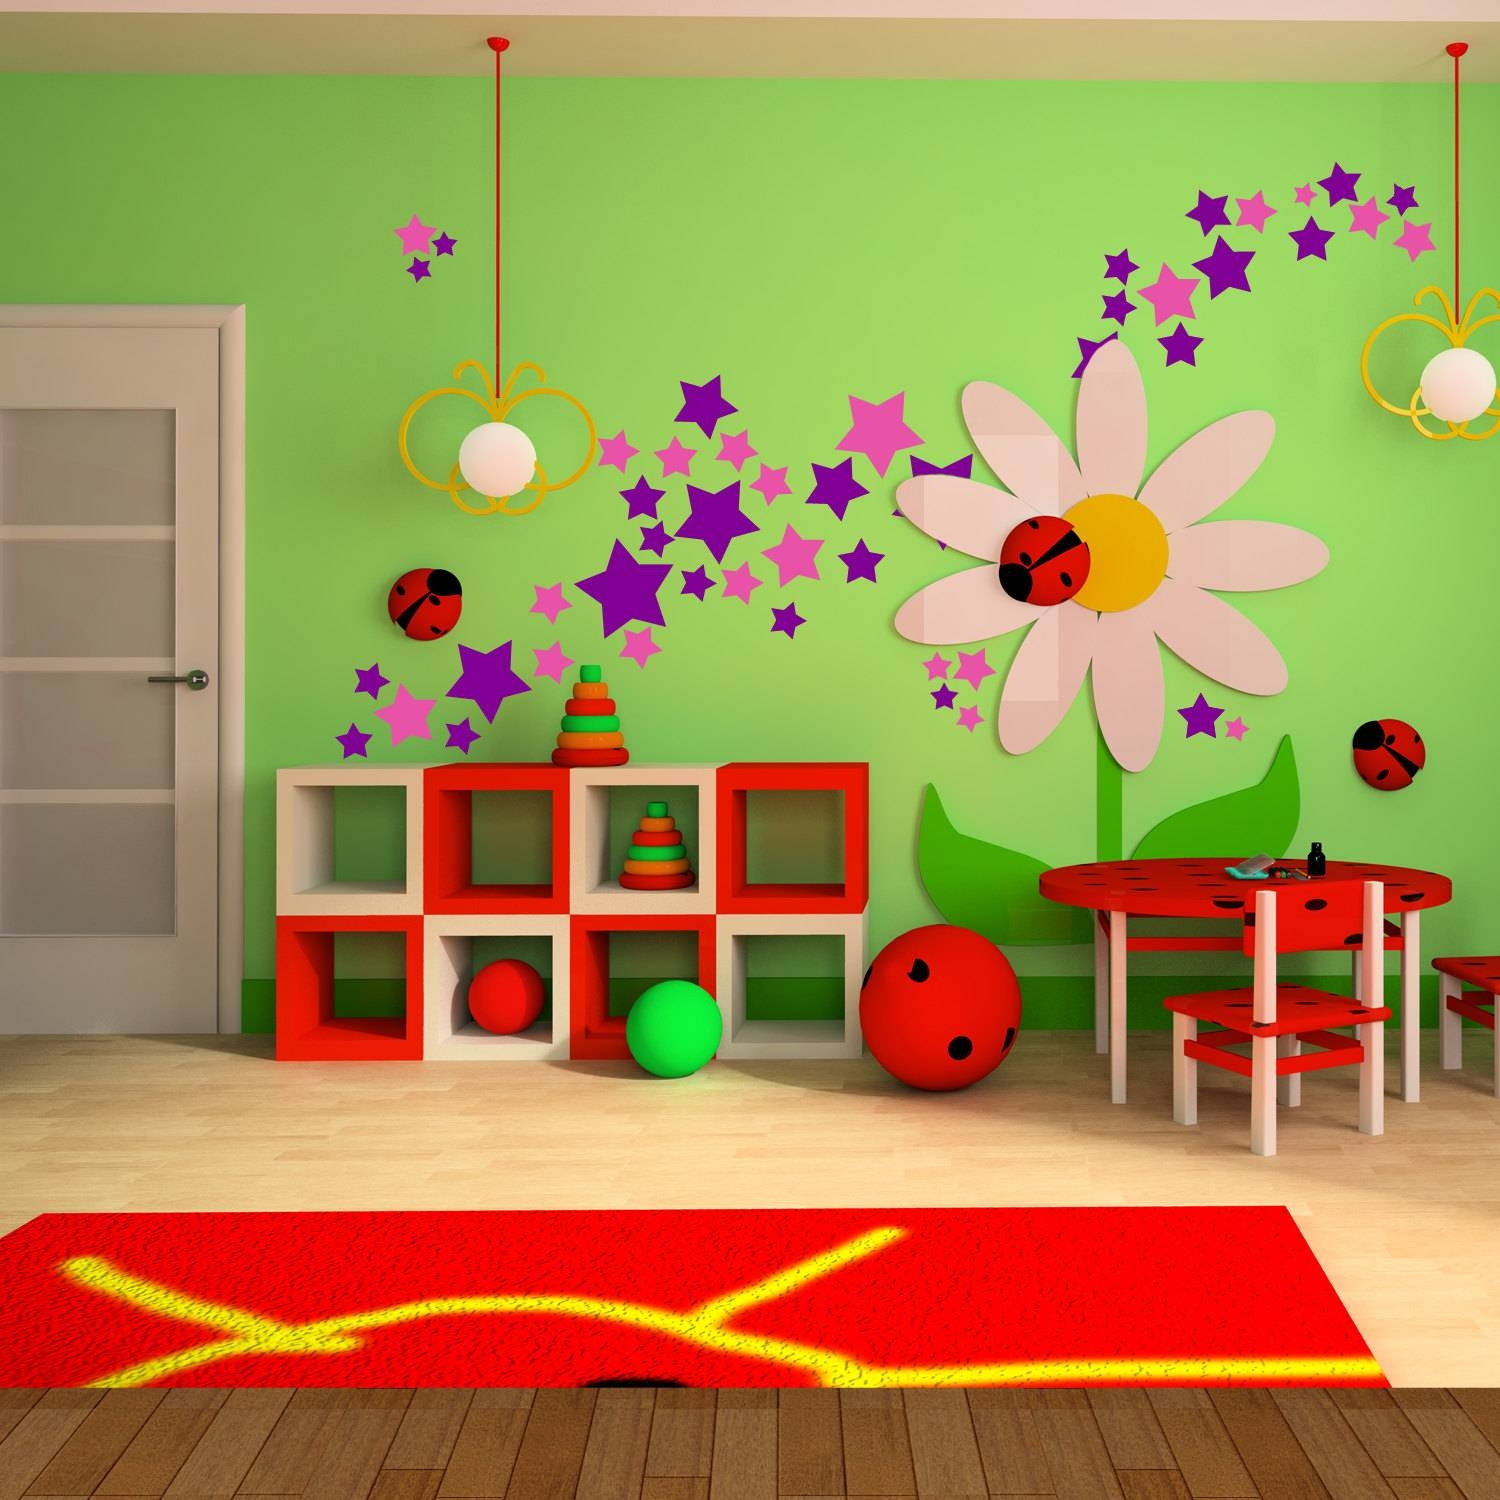 Bedroom : Contemporary Wall Art Decals 3D Wall Art Stickers Next In Latest Unusual 3D Wall Art (View 6 of 20)